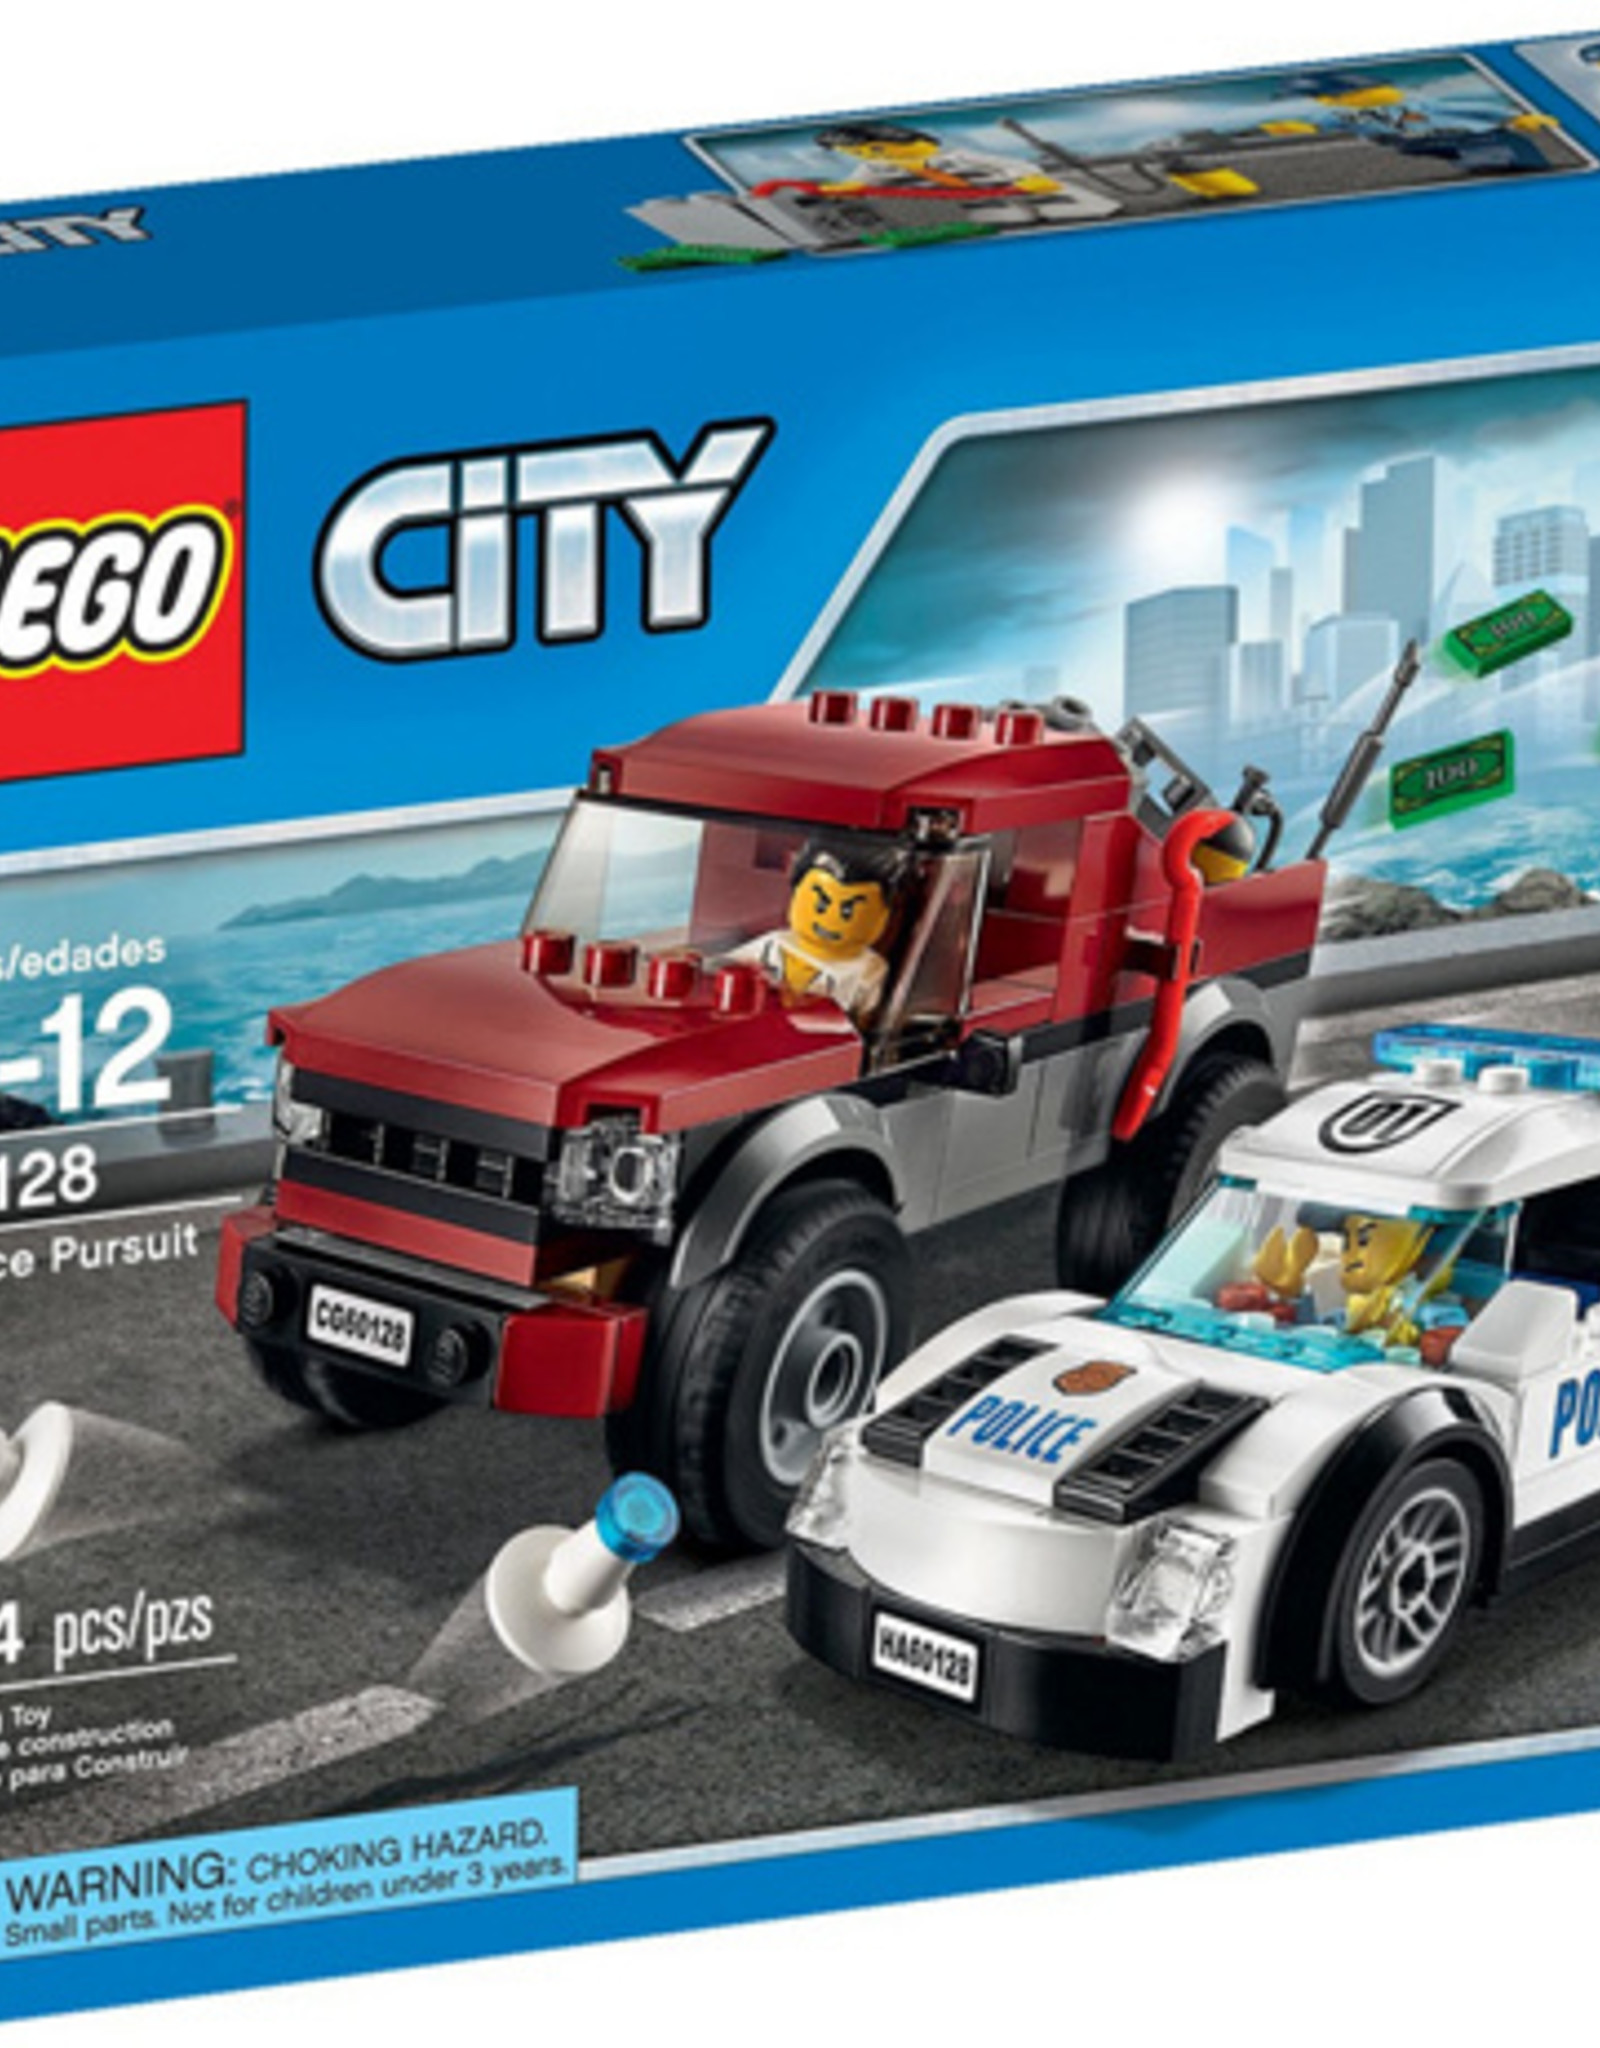 LEGO LEGO 60128 Police Persuit CITY